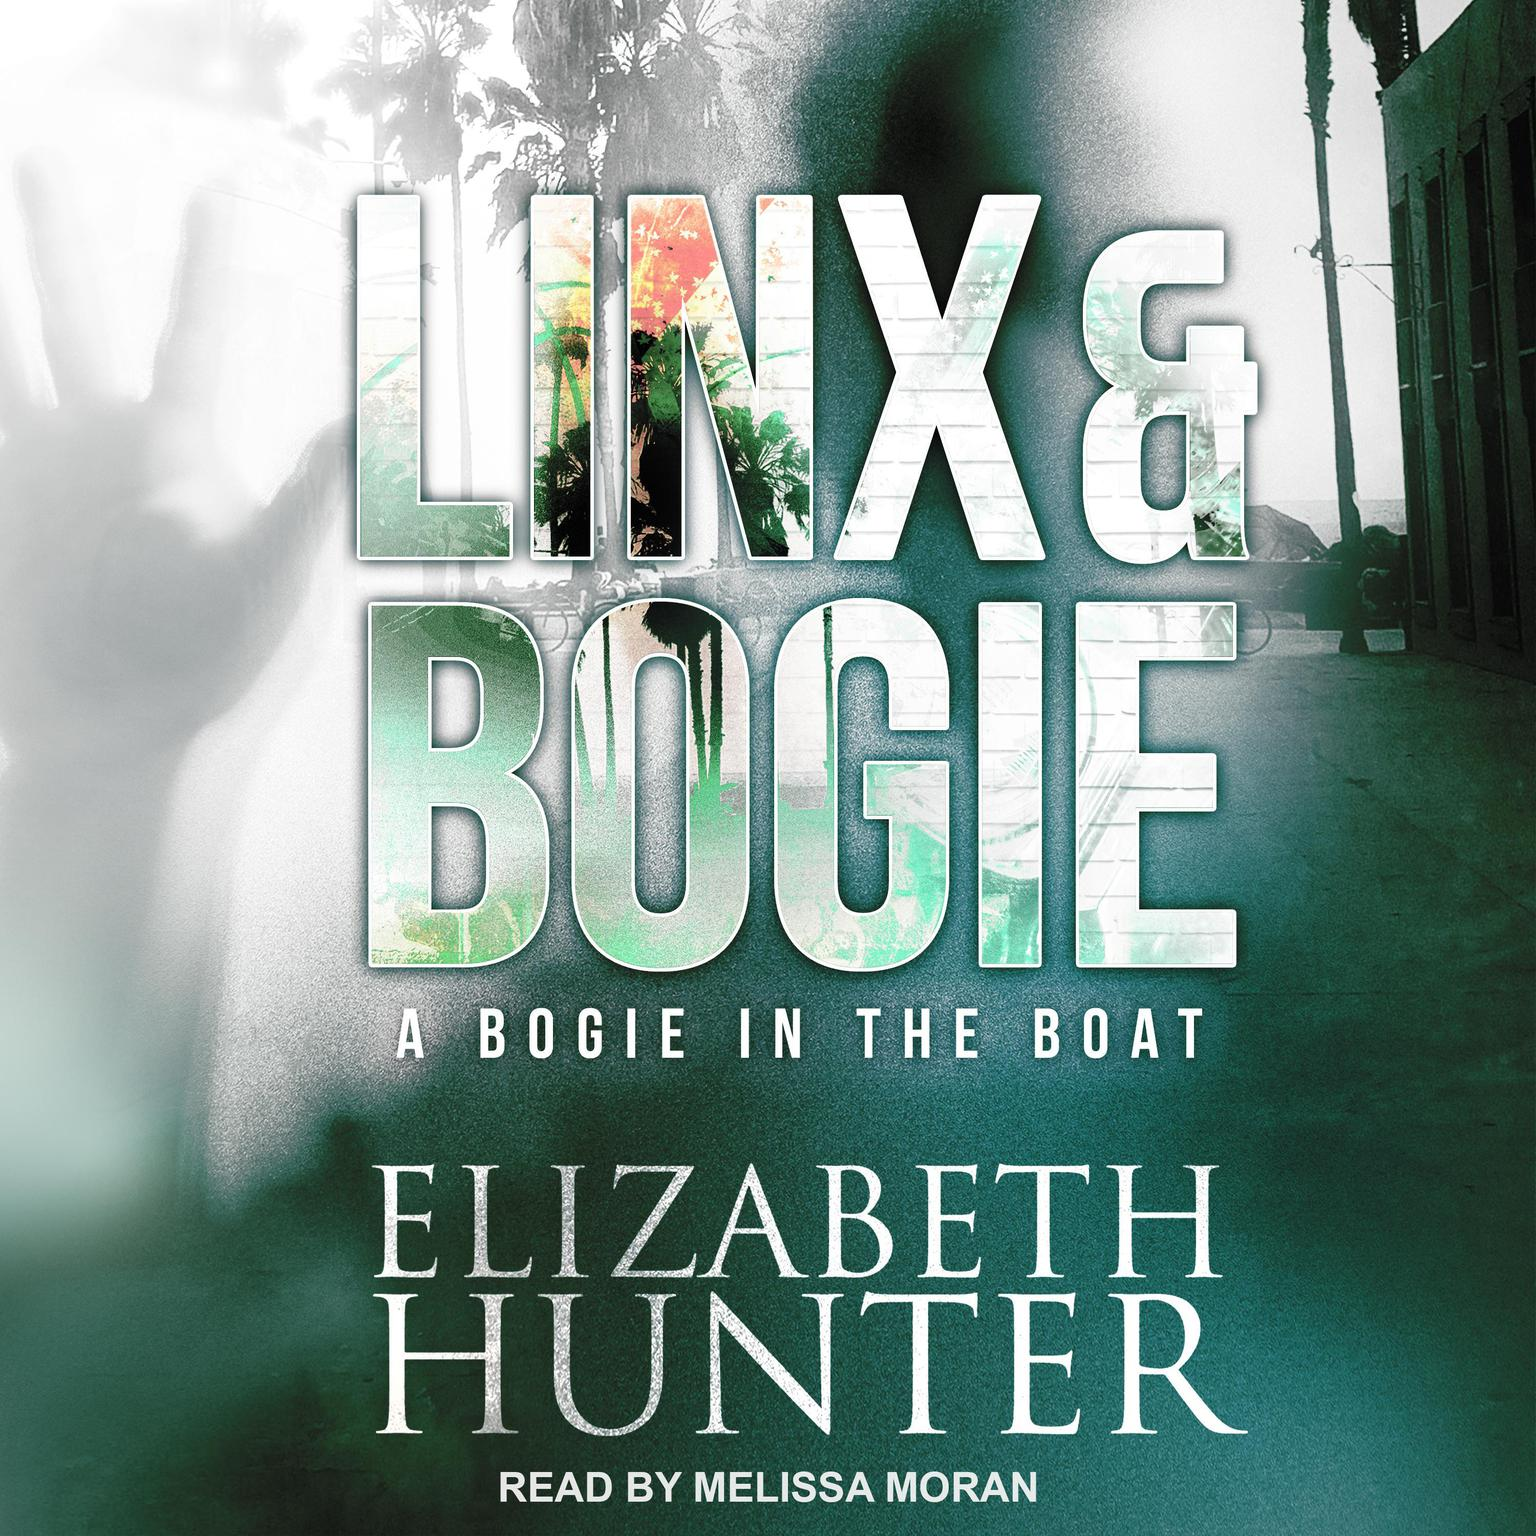 Printable A Bogie in the Boat: A Linx & Bogie Story Audiobook Cover Art